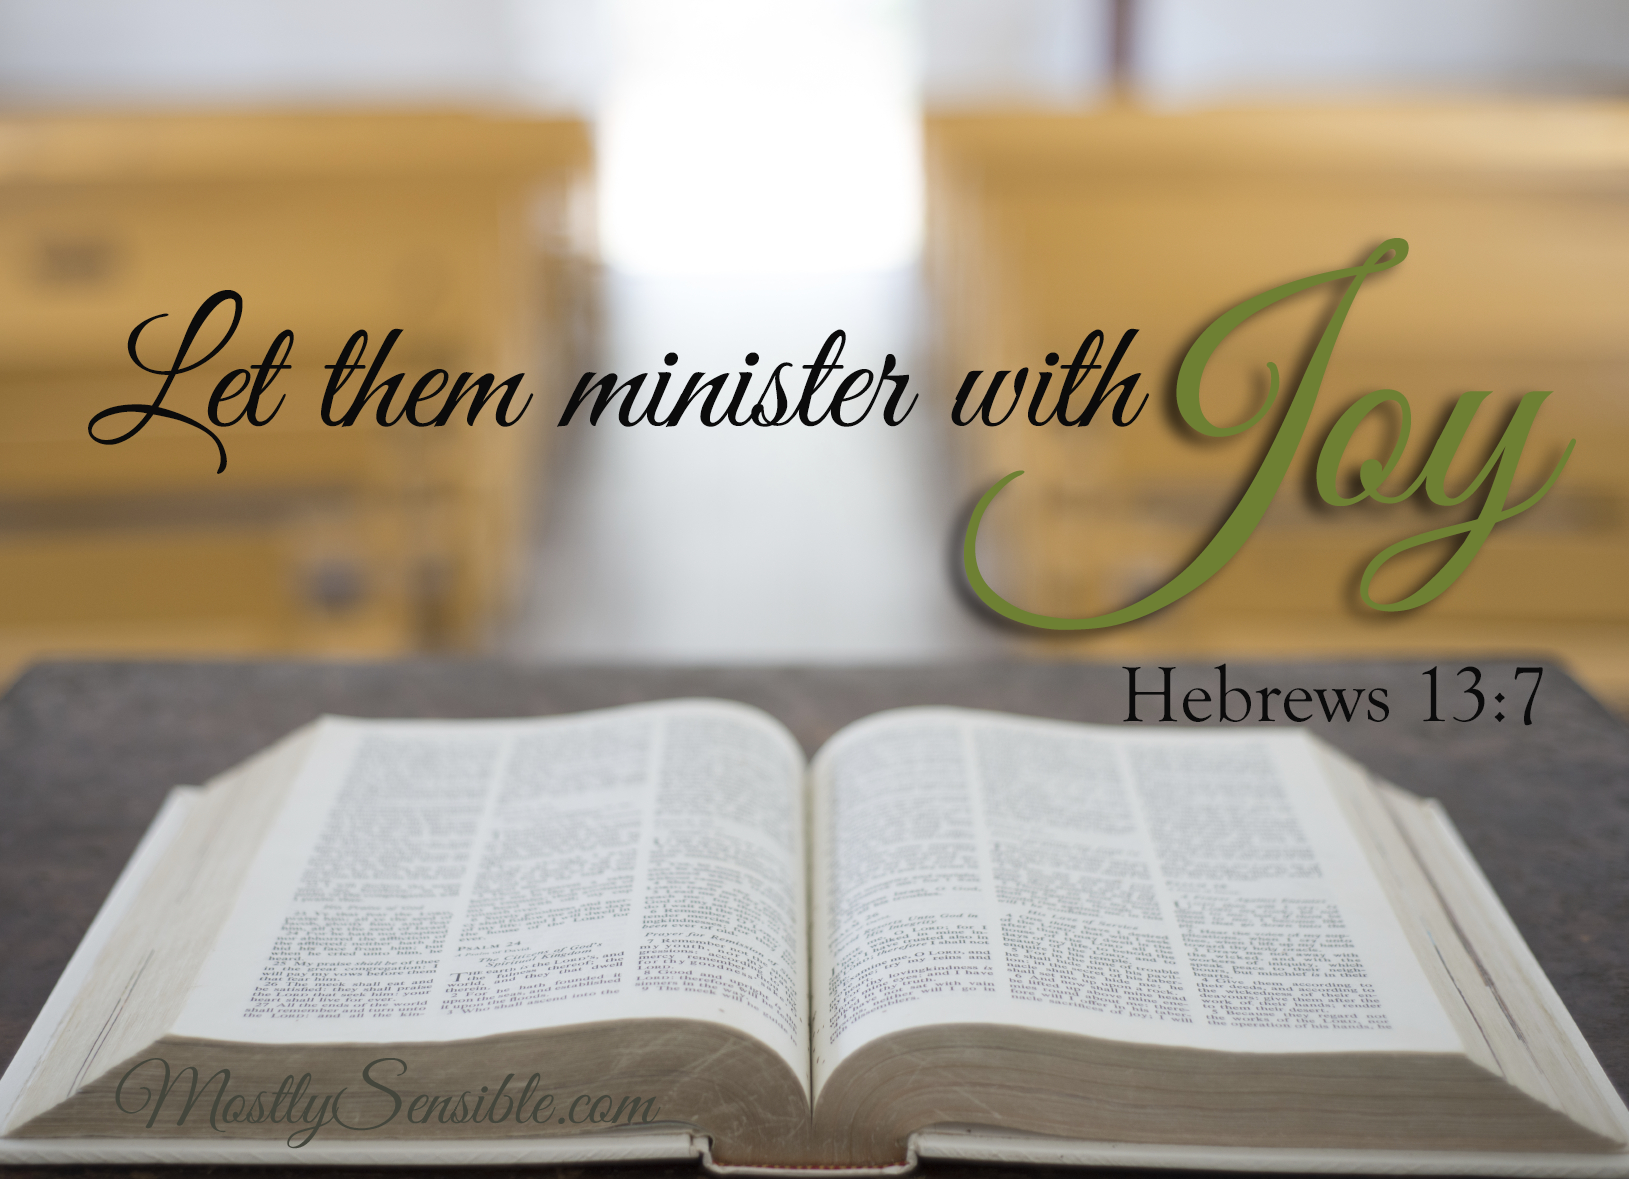 Hebrews 13.7